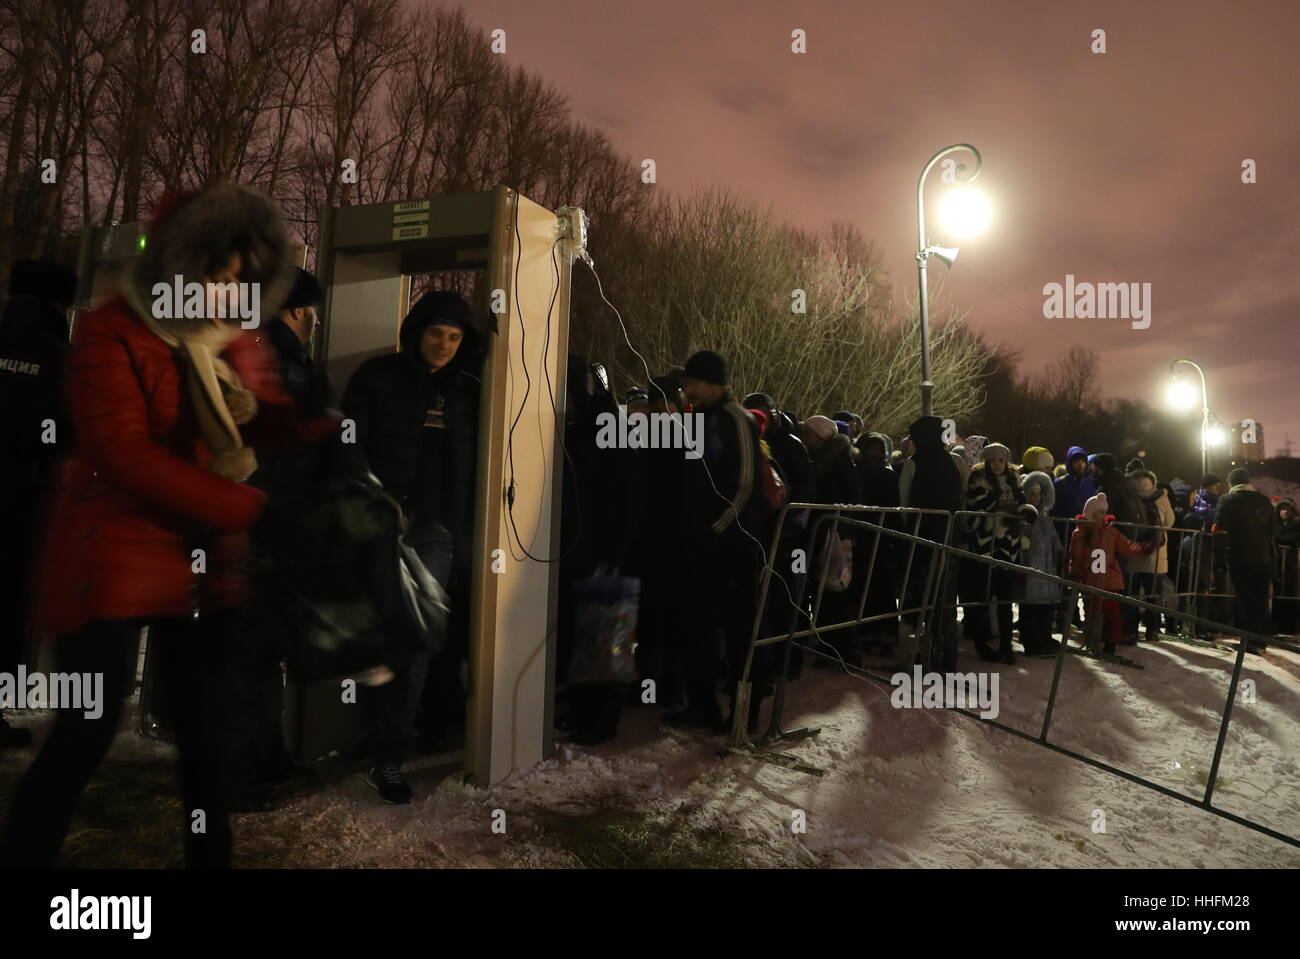 Moscow, Russia. 18th Jan, 2017. People queue to dip in the icy waters of the Borisovo Ponds during Epiphany celebrations. - Stock Image